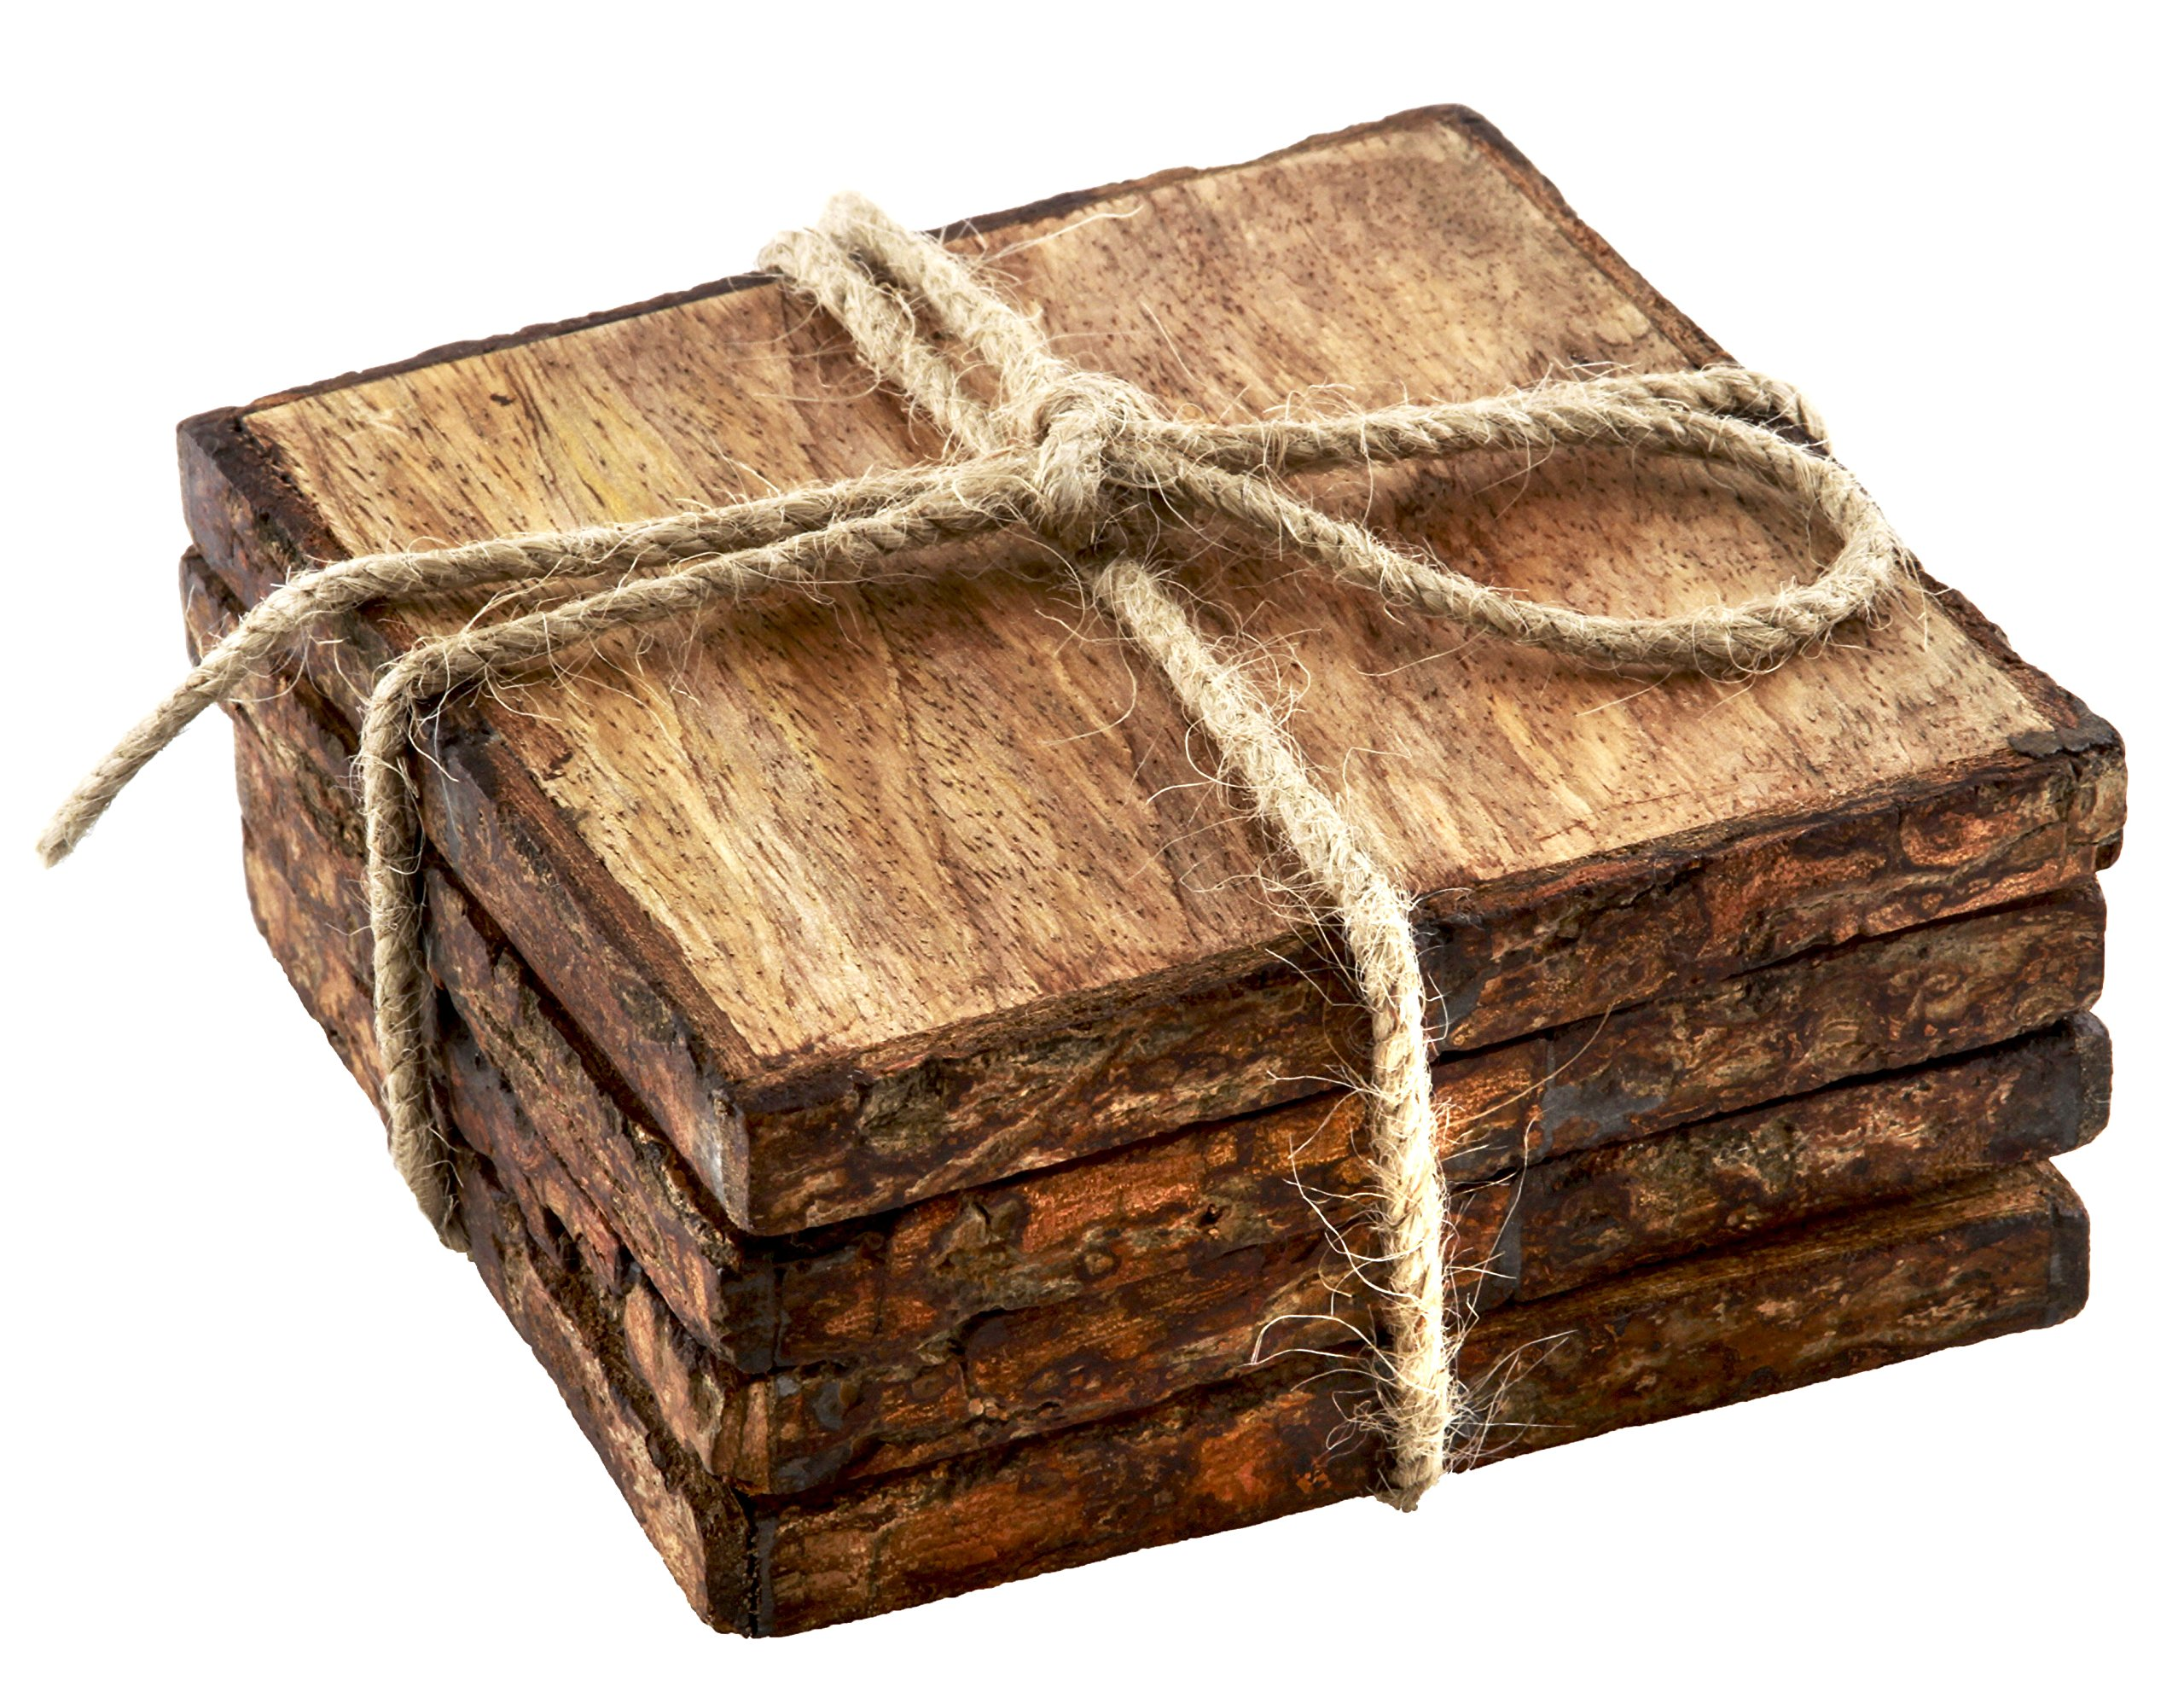 Thirstystone NR23701 Urban Farm Square Mango Wood Bark Coasters (Set of 4), Brown